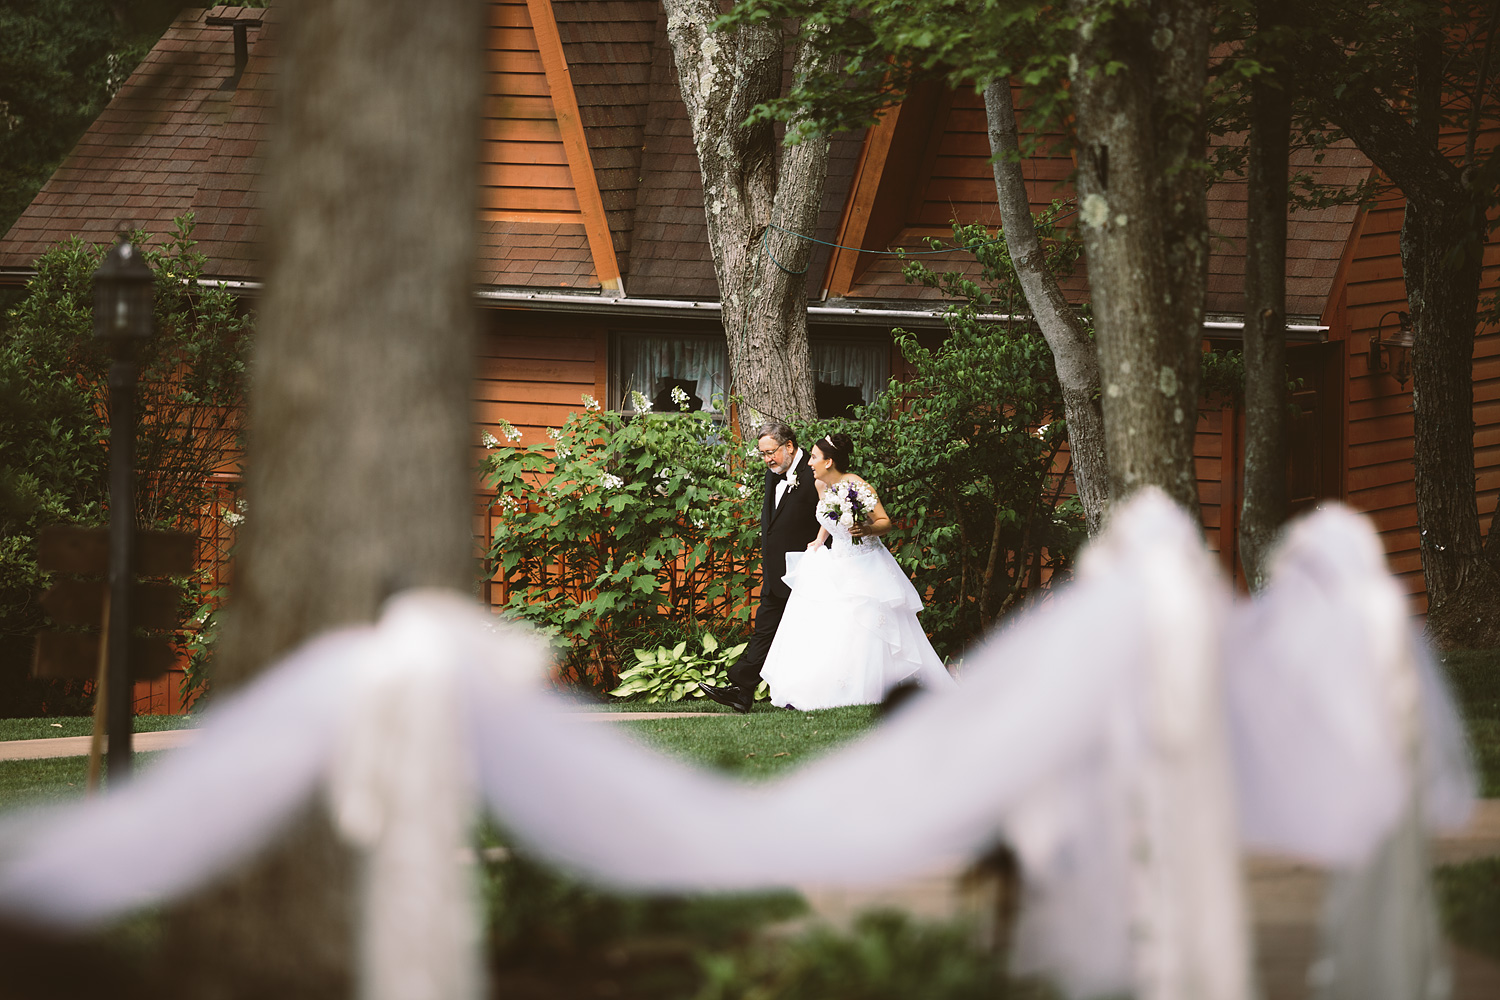 loudonville-ohio-wedding-photographers-landolls-mochican-castle_52.jpg